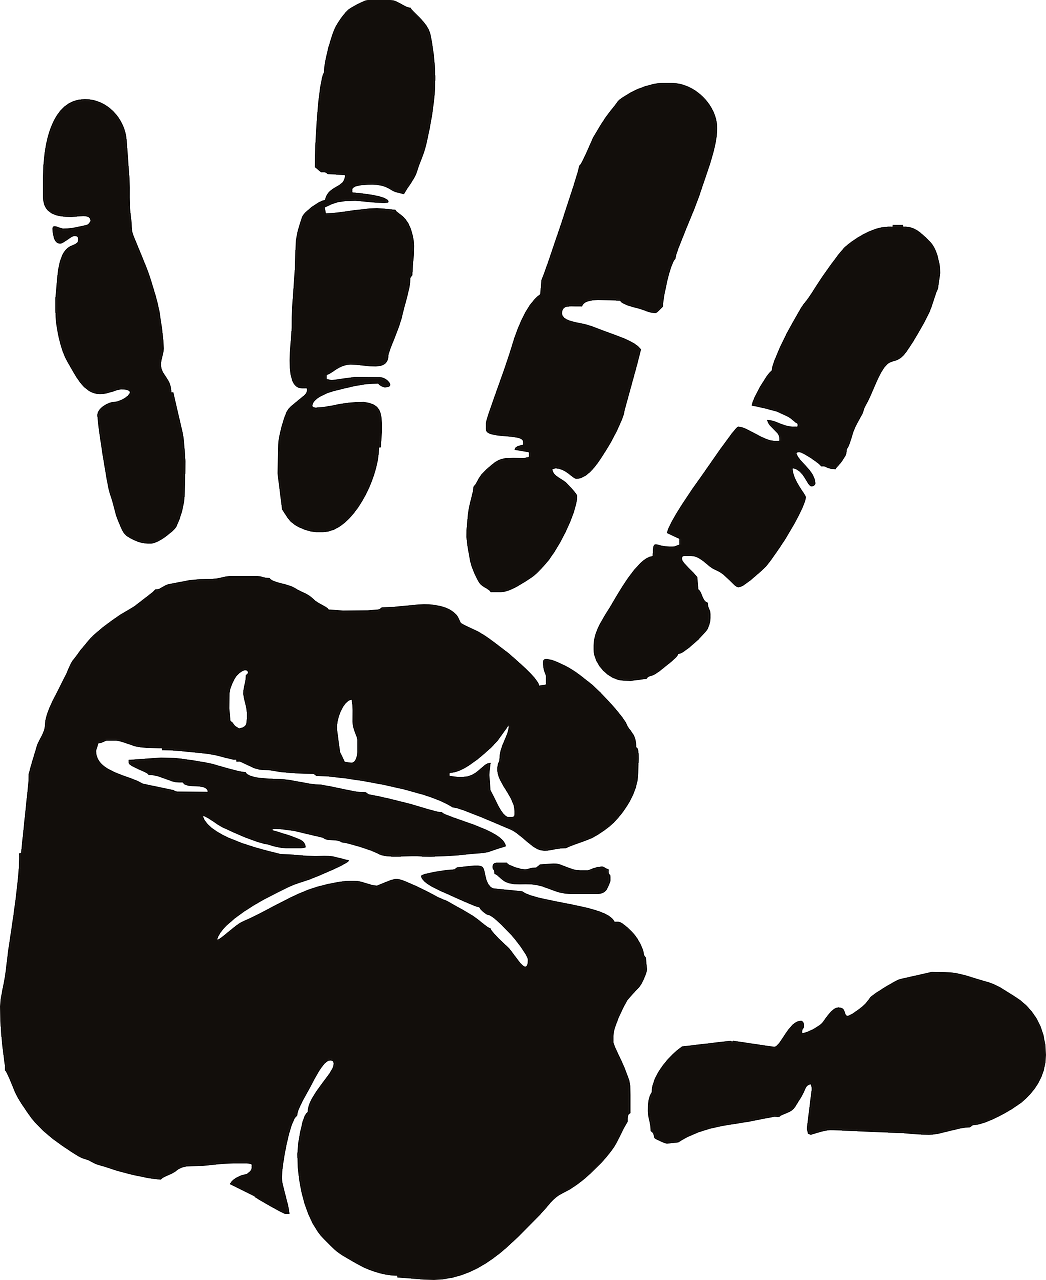 Handprint clipart 5 hand. Local mission matters zipsprout